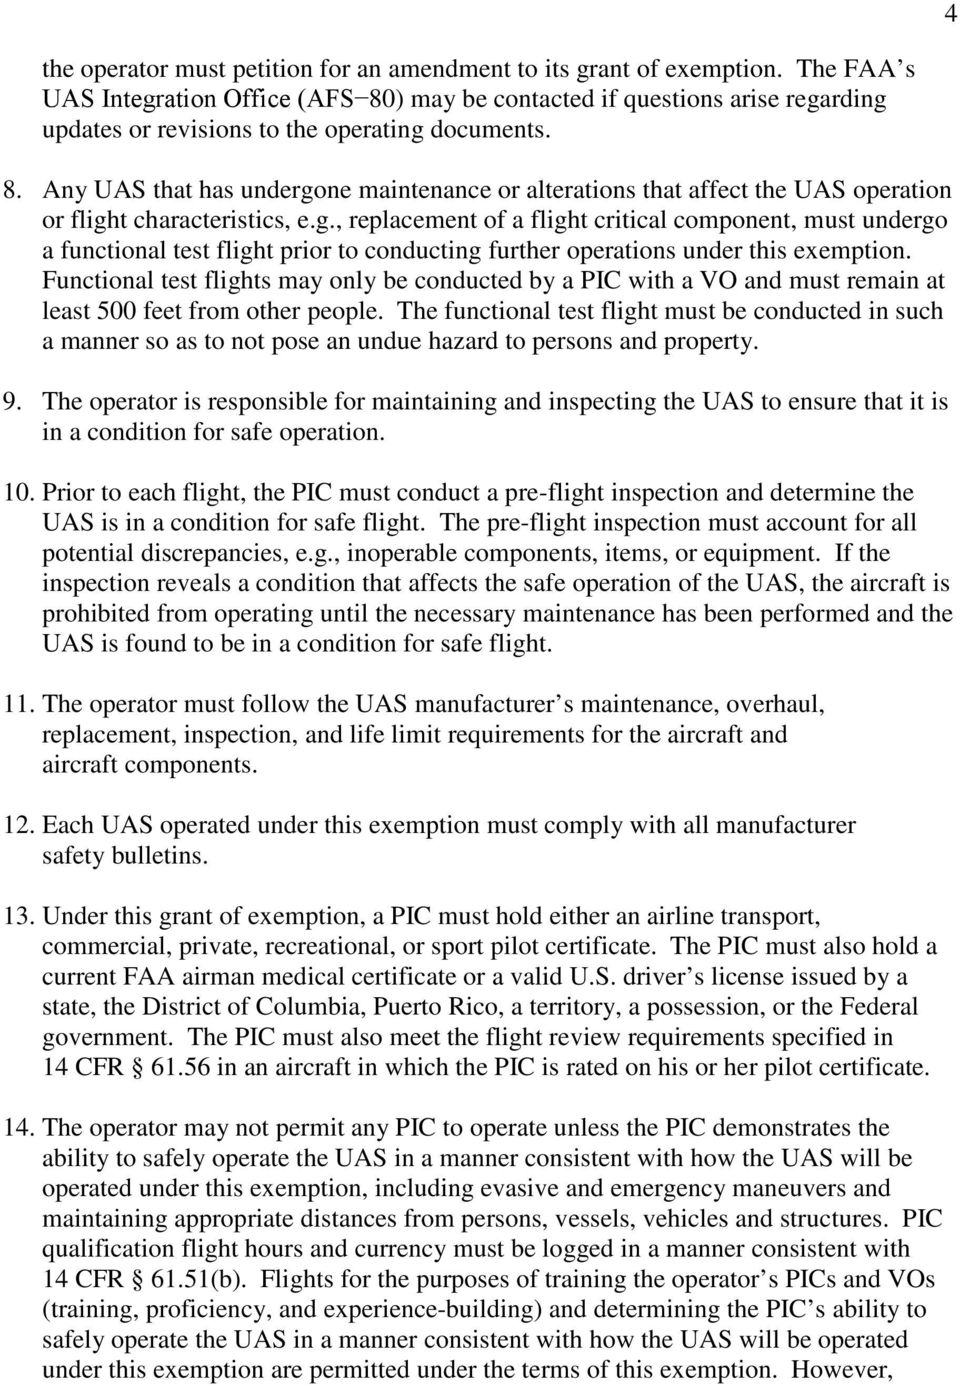 g., replacement of a flight critical component, must undergo a functional test flight prior to conducting further operations under this exemption.